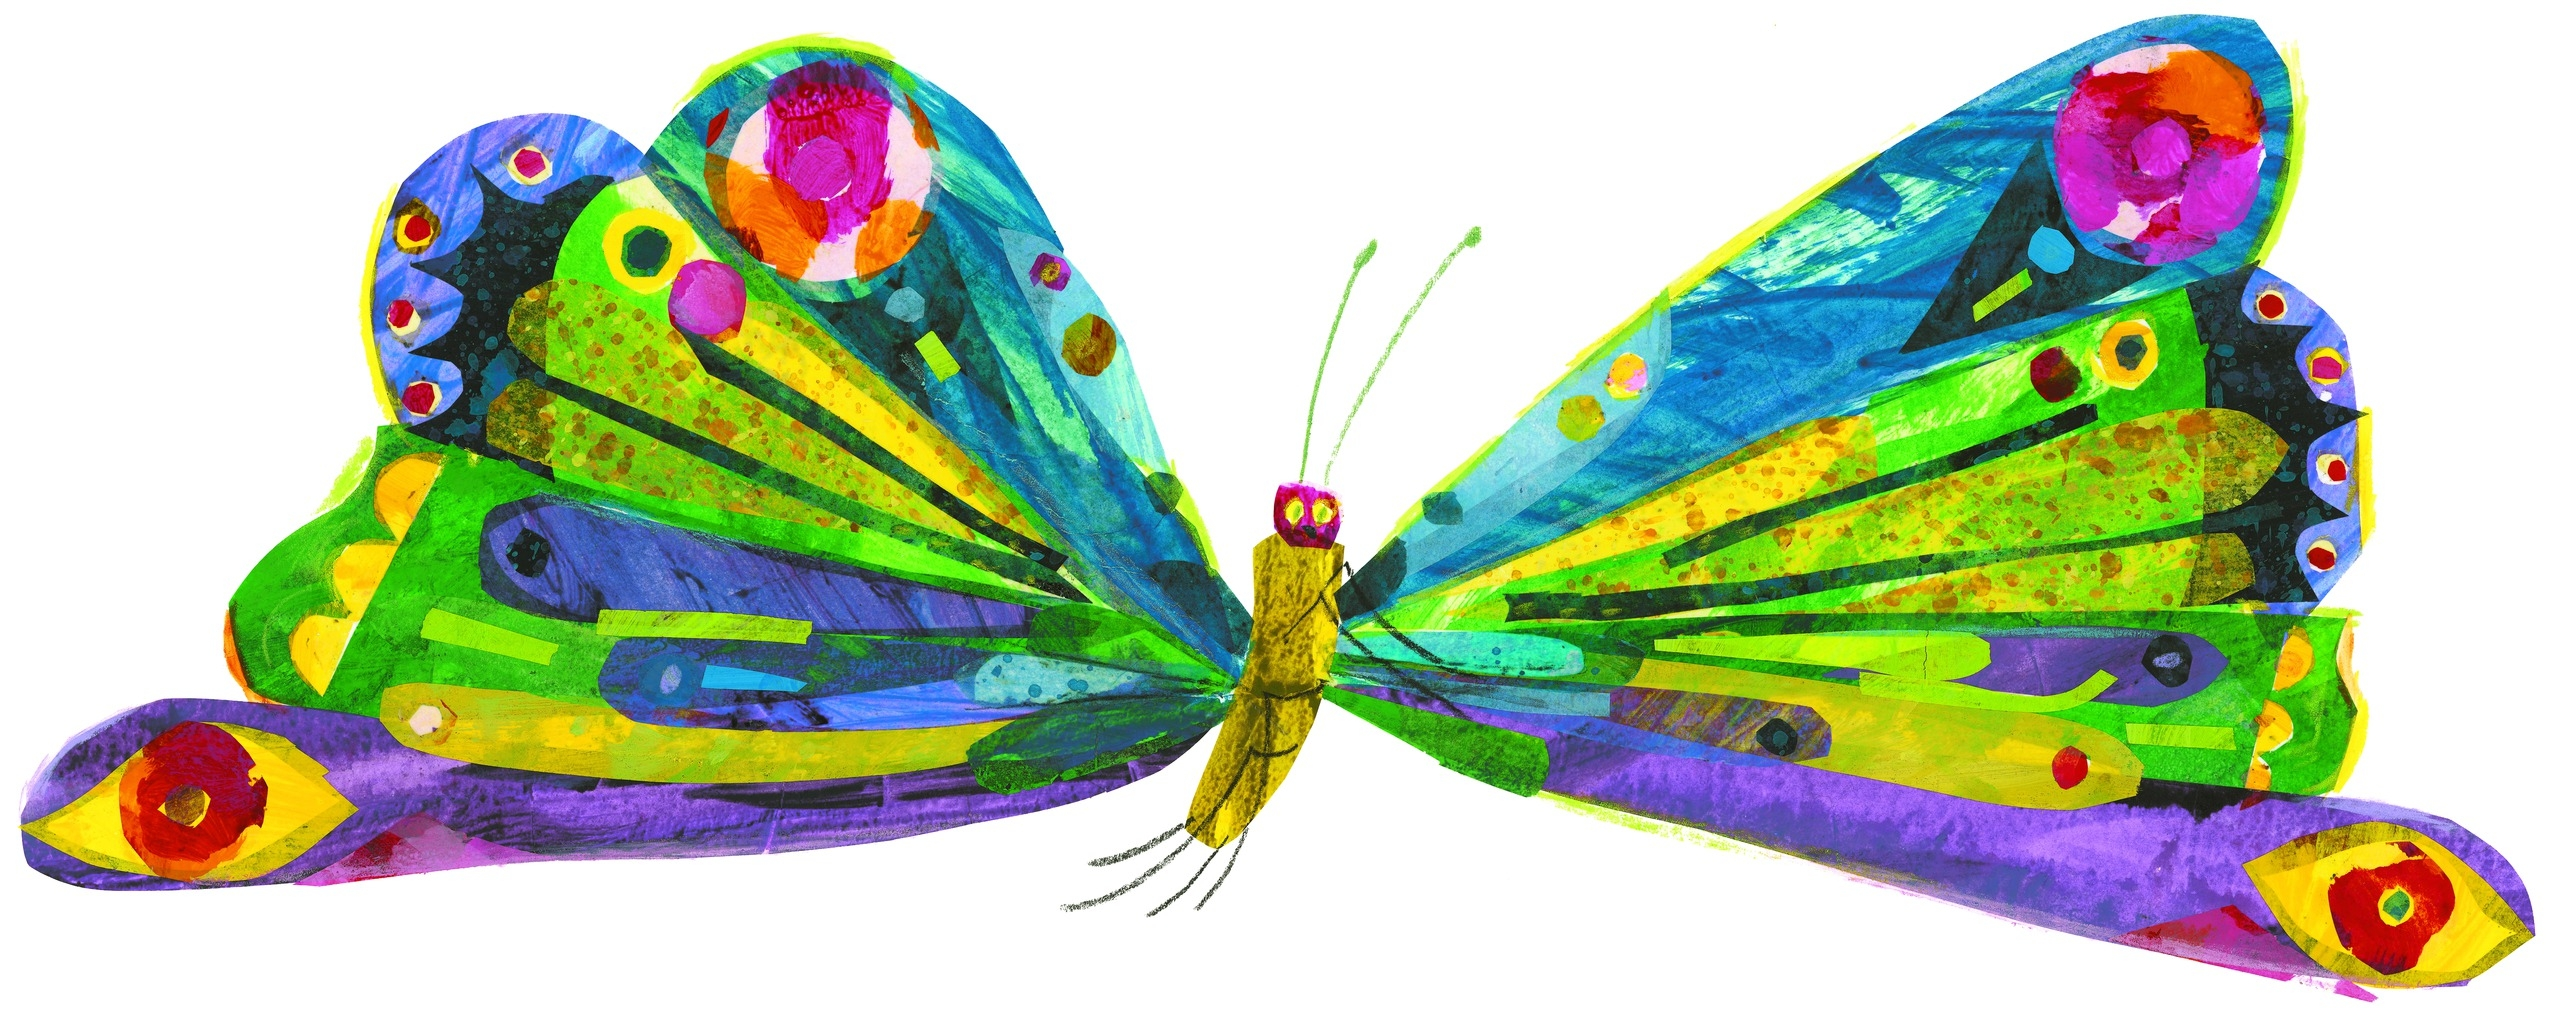 Caterpillar Into Butterfly PNG - 157057